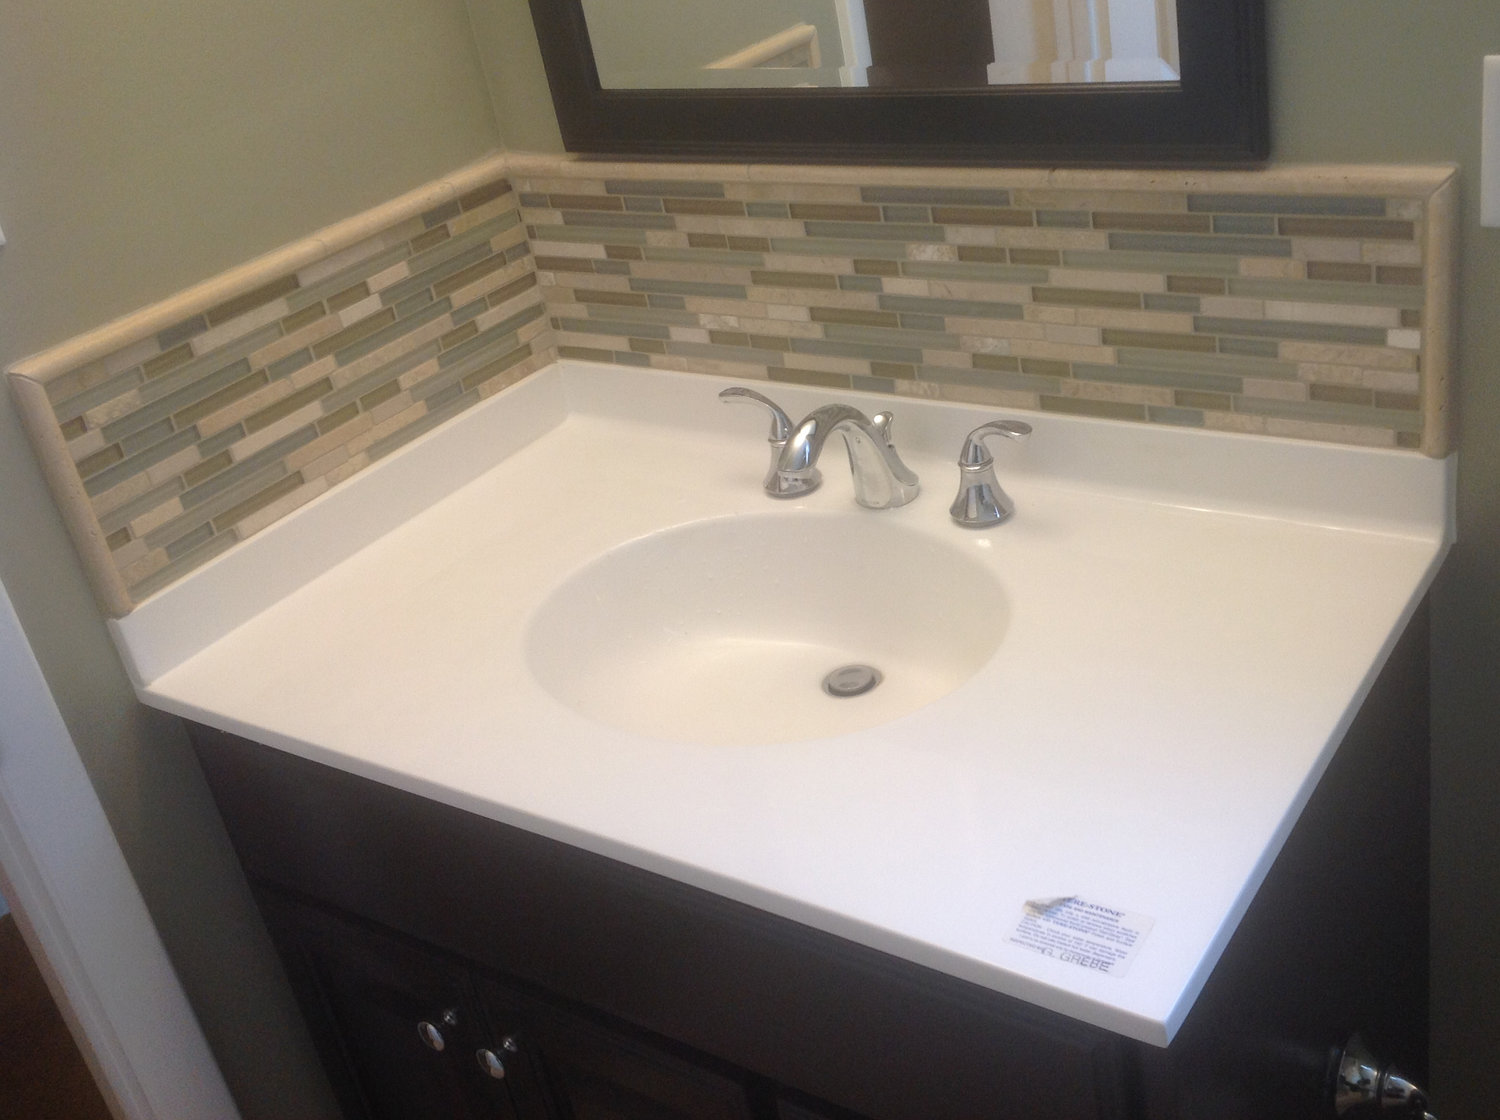 Sheridan Construction - Bathroom remodel wilmington de